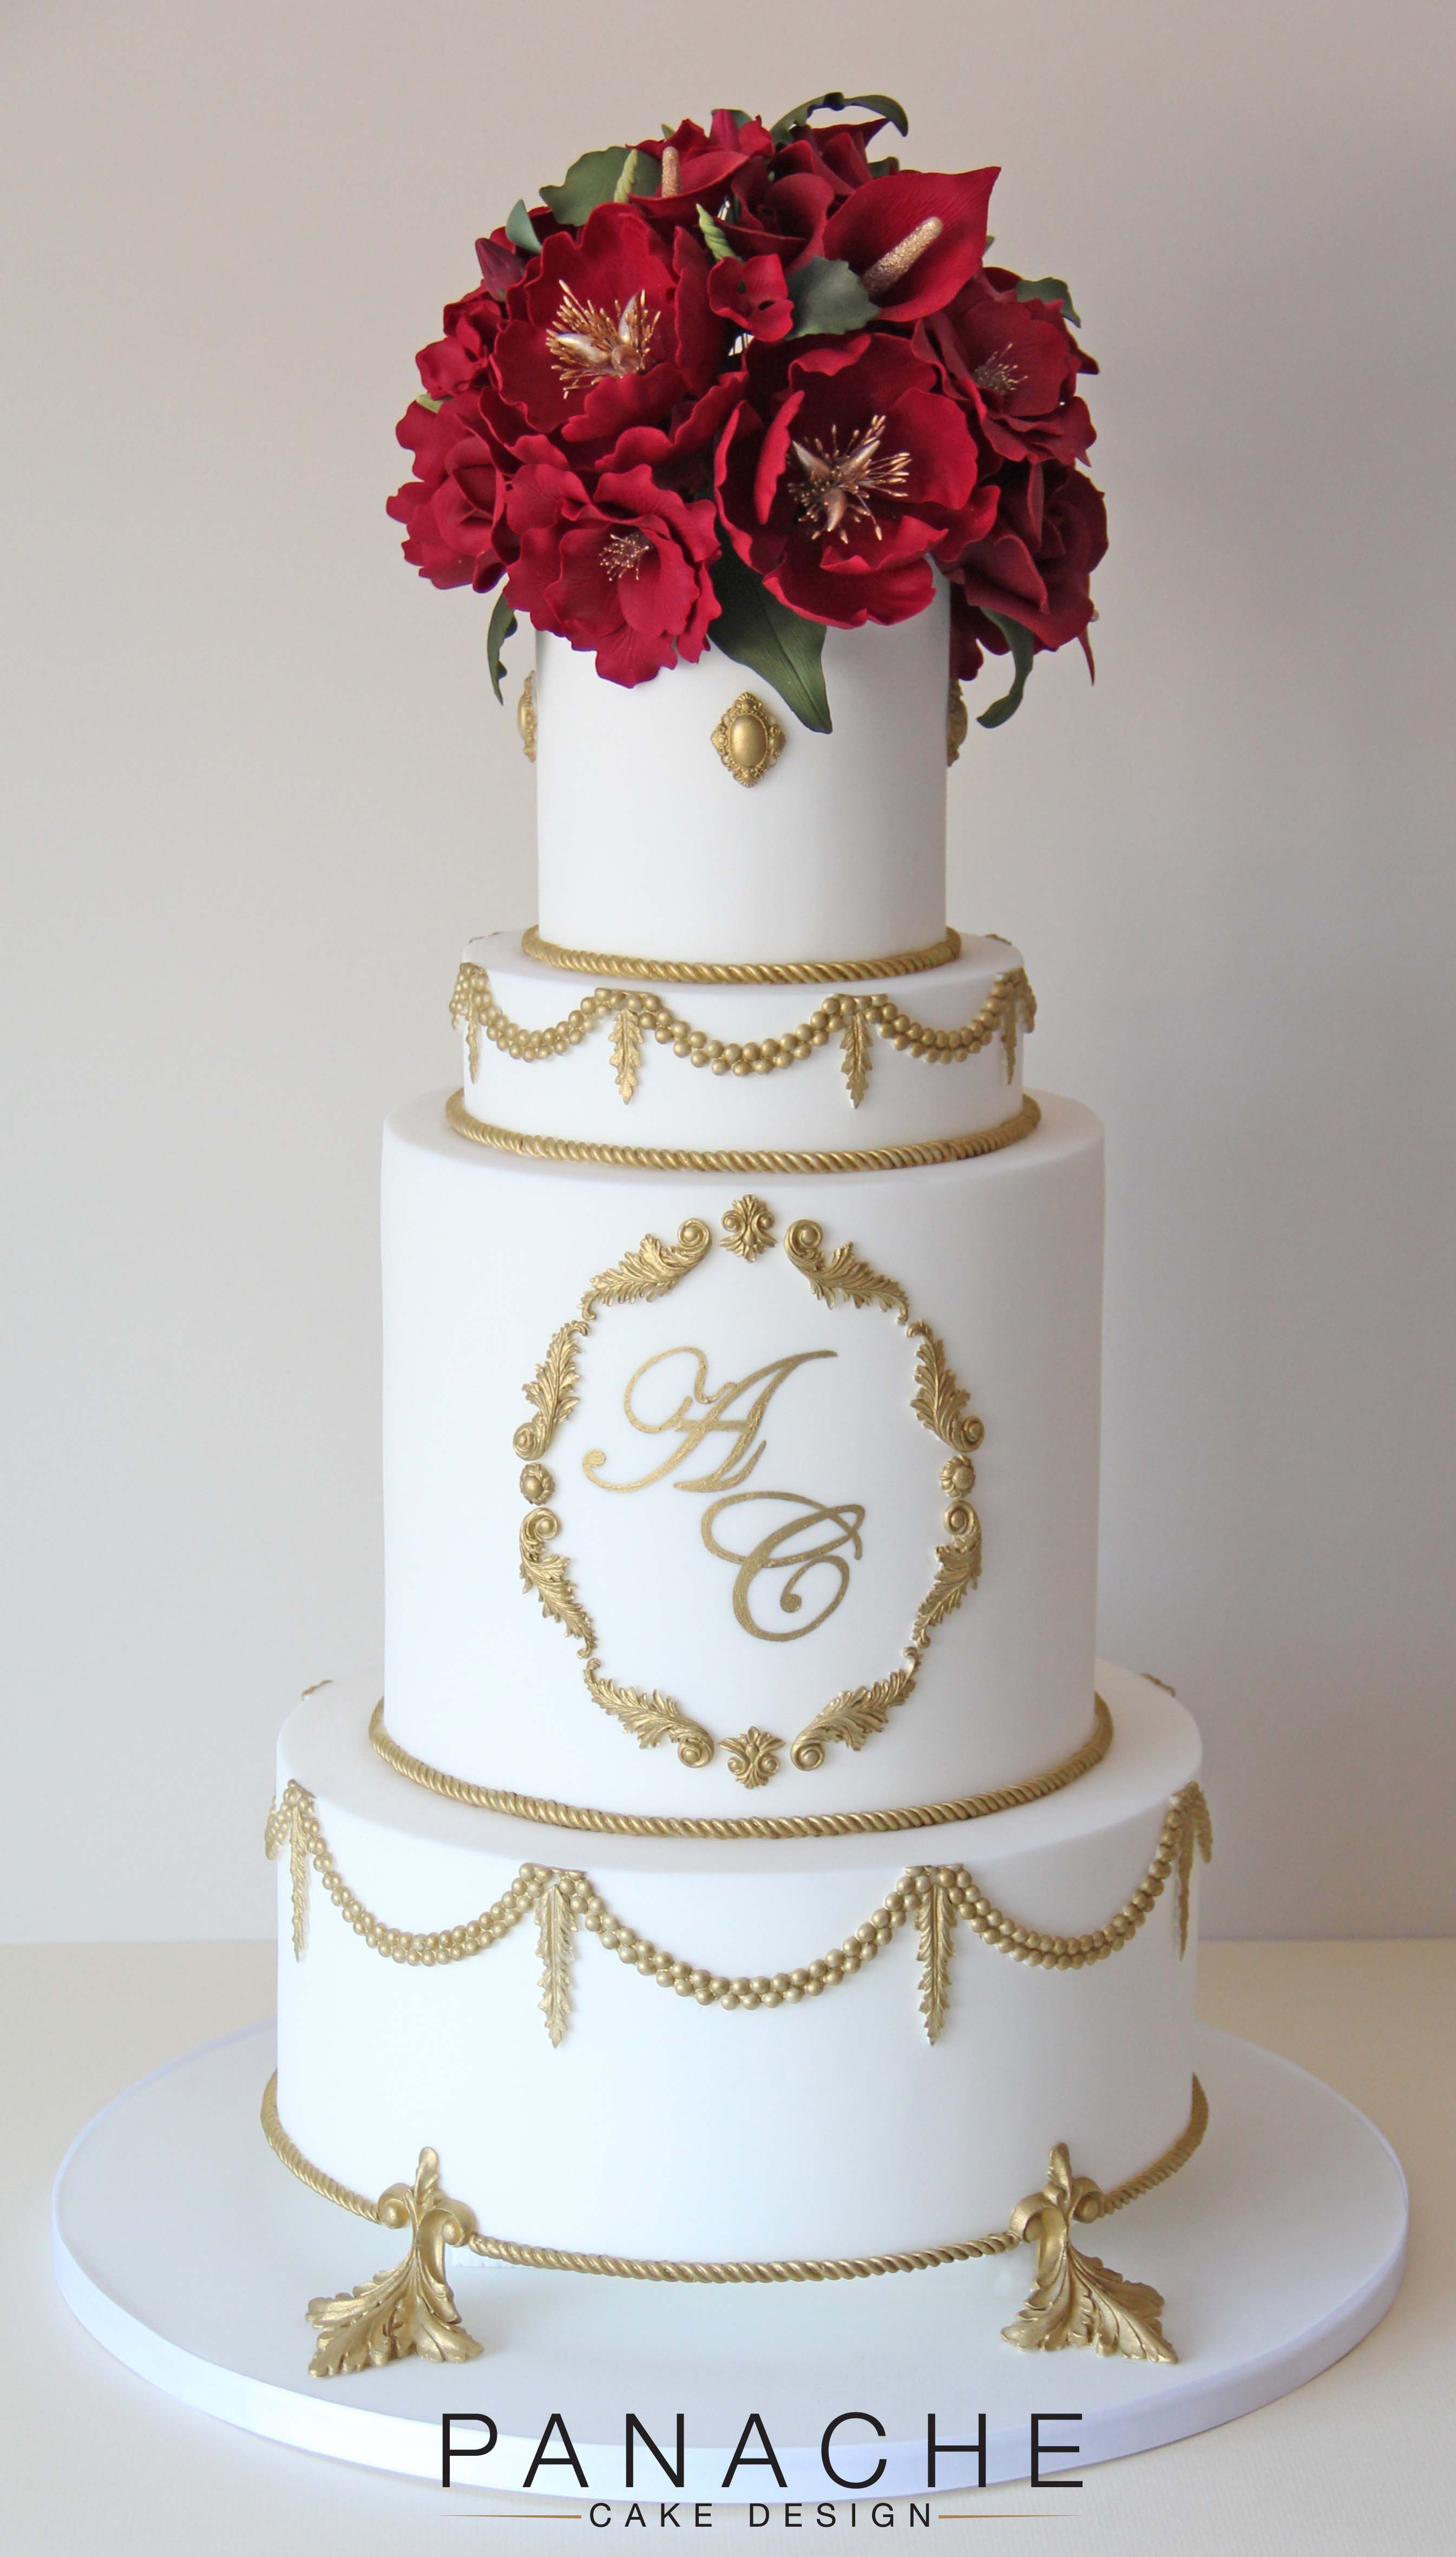 Regal opulent wedding cake london contemporary sugar flowers red regal opulent wedding cake london contemporary sugar flowers red flowers roses peonies lillies gold red white mightylinksfo Image collections